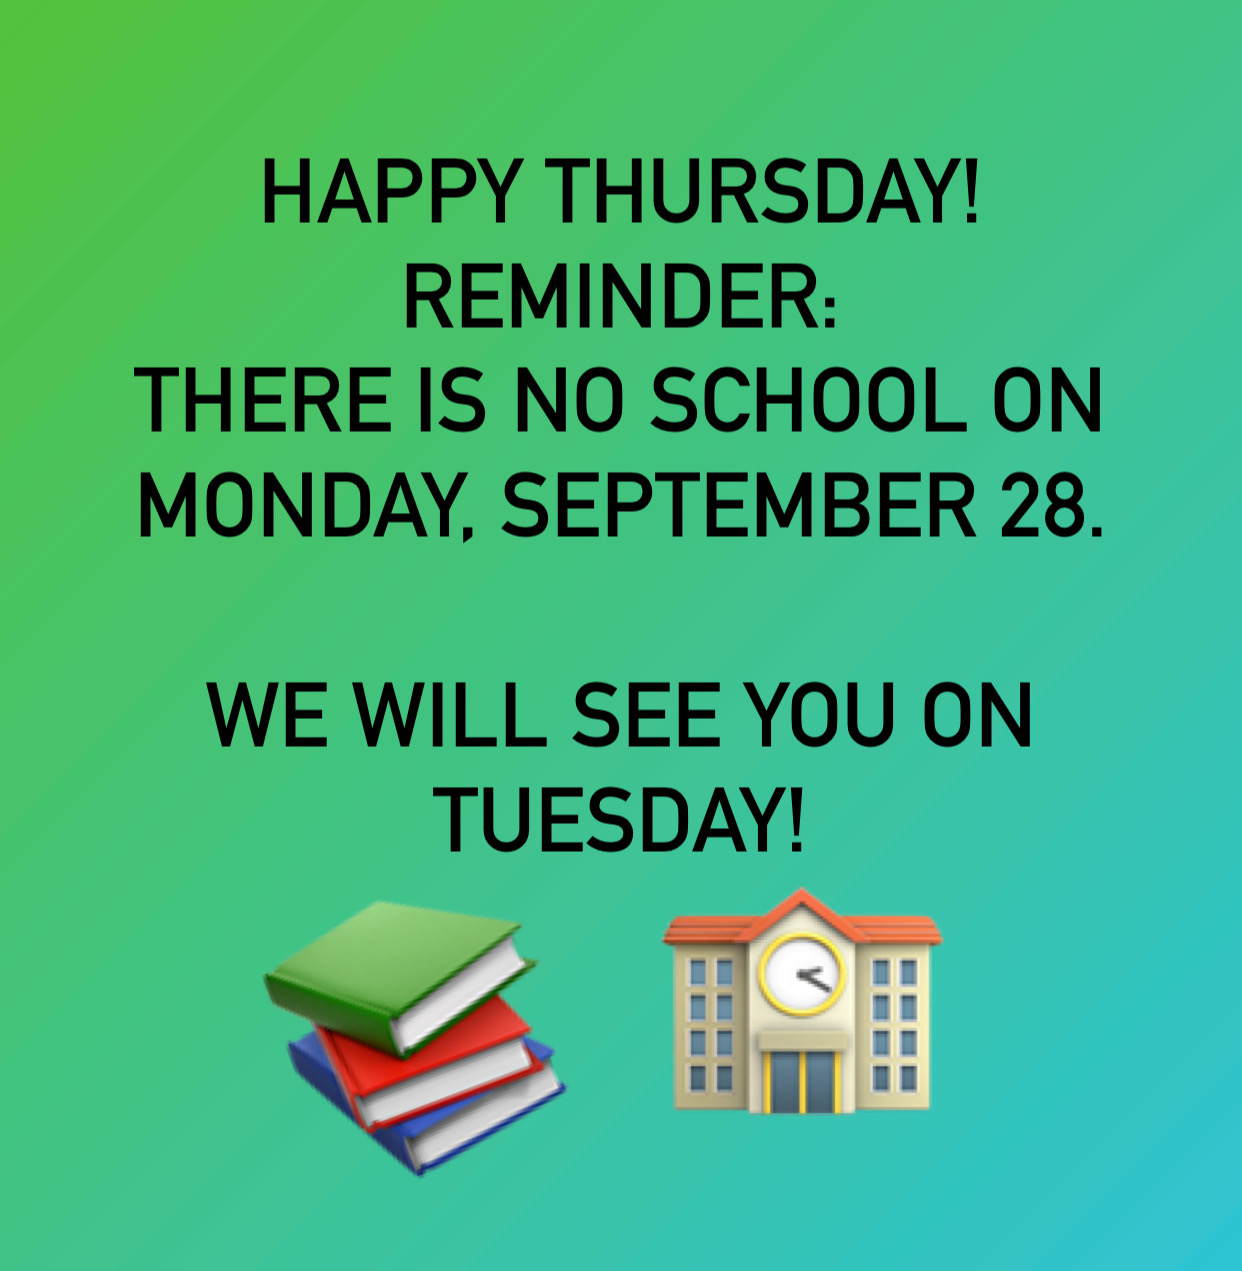 Reminder: No school Monday September 28th